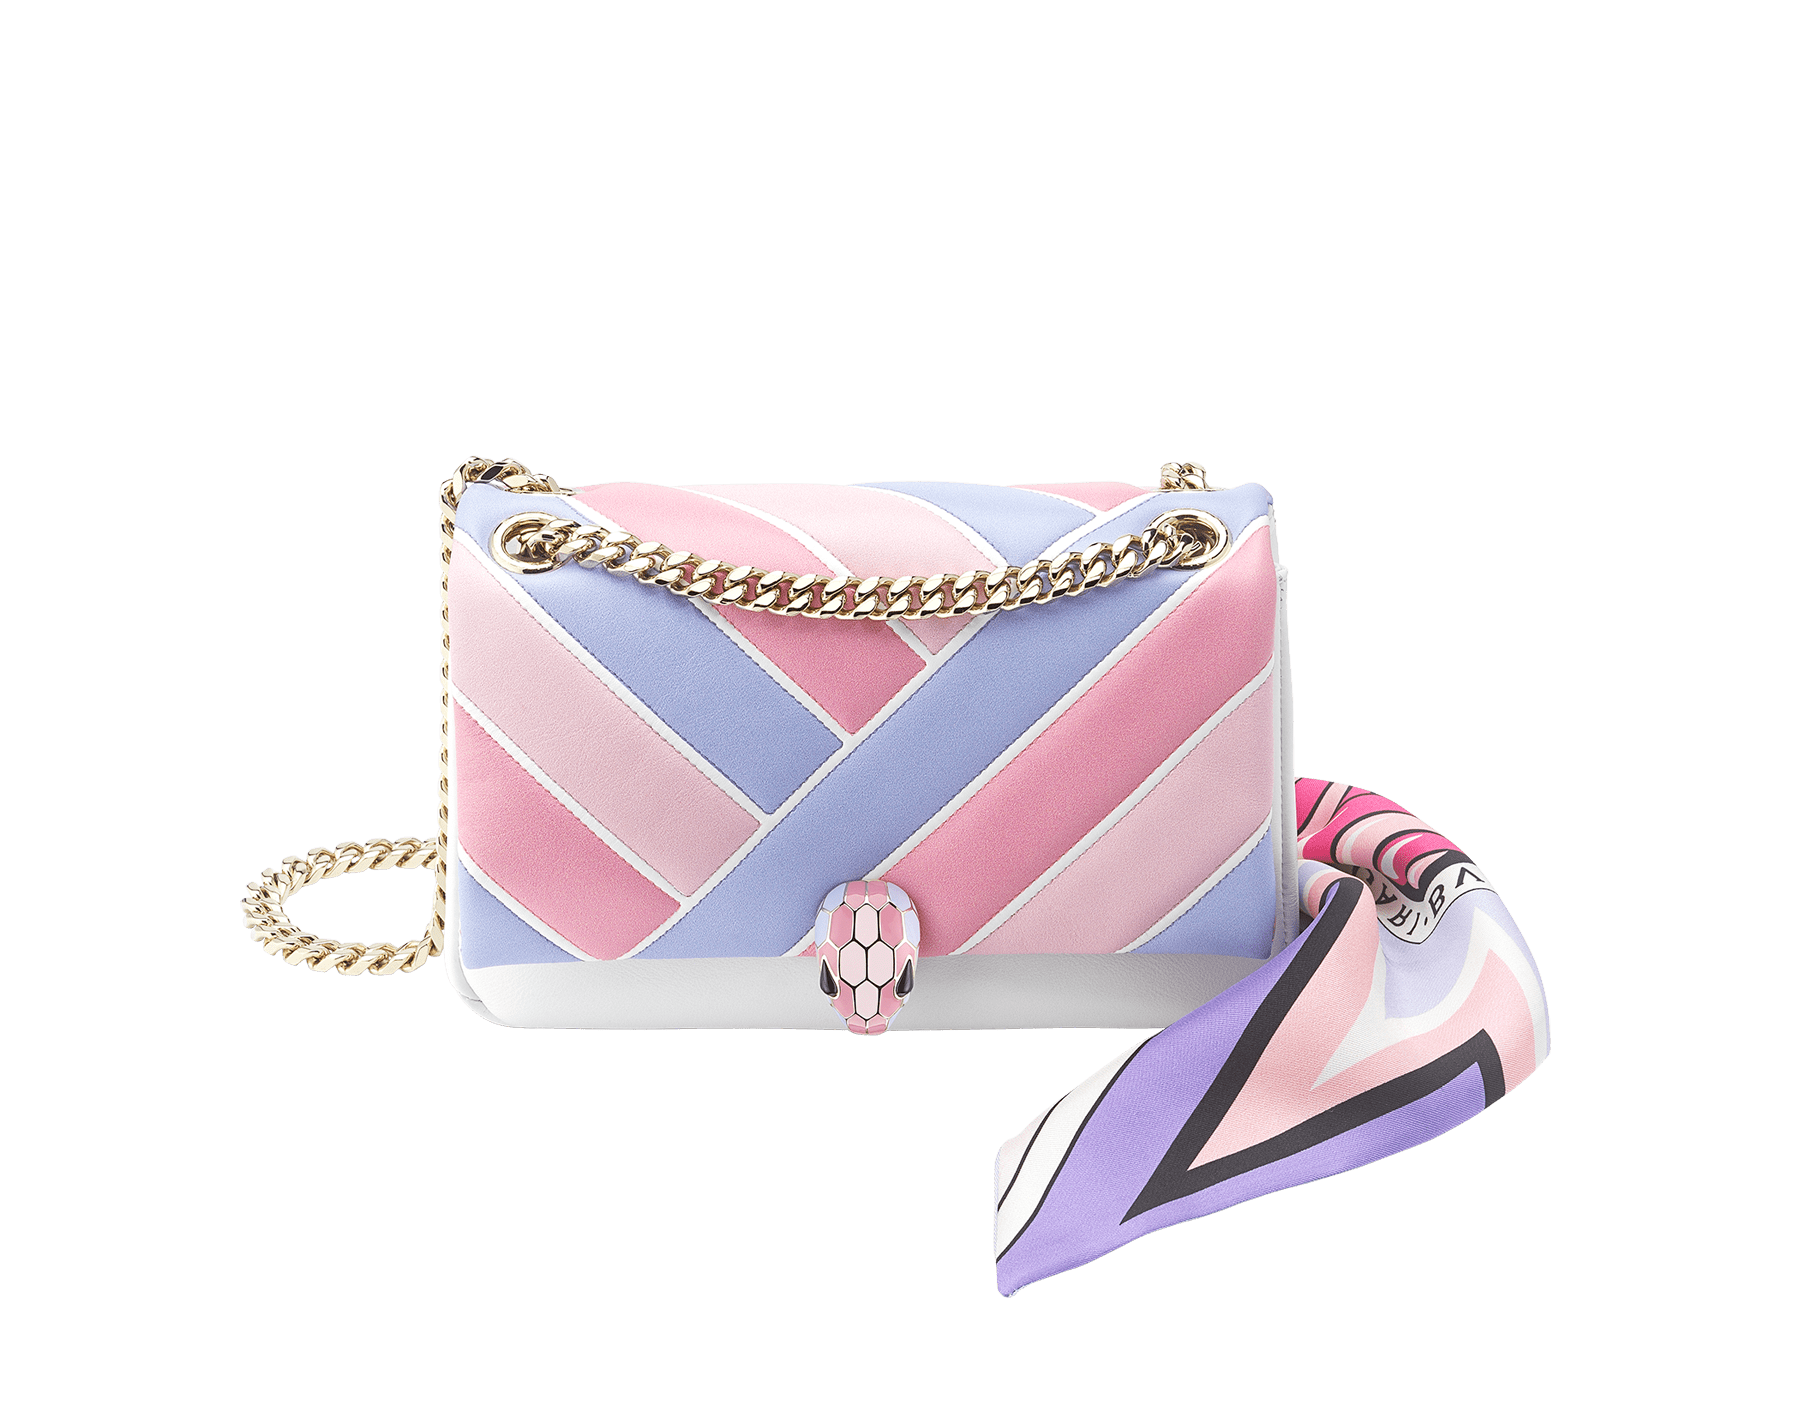 """""Chinese Valentine's Day"""" Special Edition exclusive gift set featuring a bag and a shelley. """"Serpenti Cabochon"""" shoulder bag in soft quilted multicolour flap and back and white agate calf leather front and sides, with a graphic motif. Brass light gold plated tempting snakehead closure in shiny lavender, flamingo quartz and rosa di francia enamel and black onyx eyes. Lavender """"MAXI SHELLEY B"""" shelley in fine silk twill. 290471 image 2"